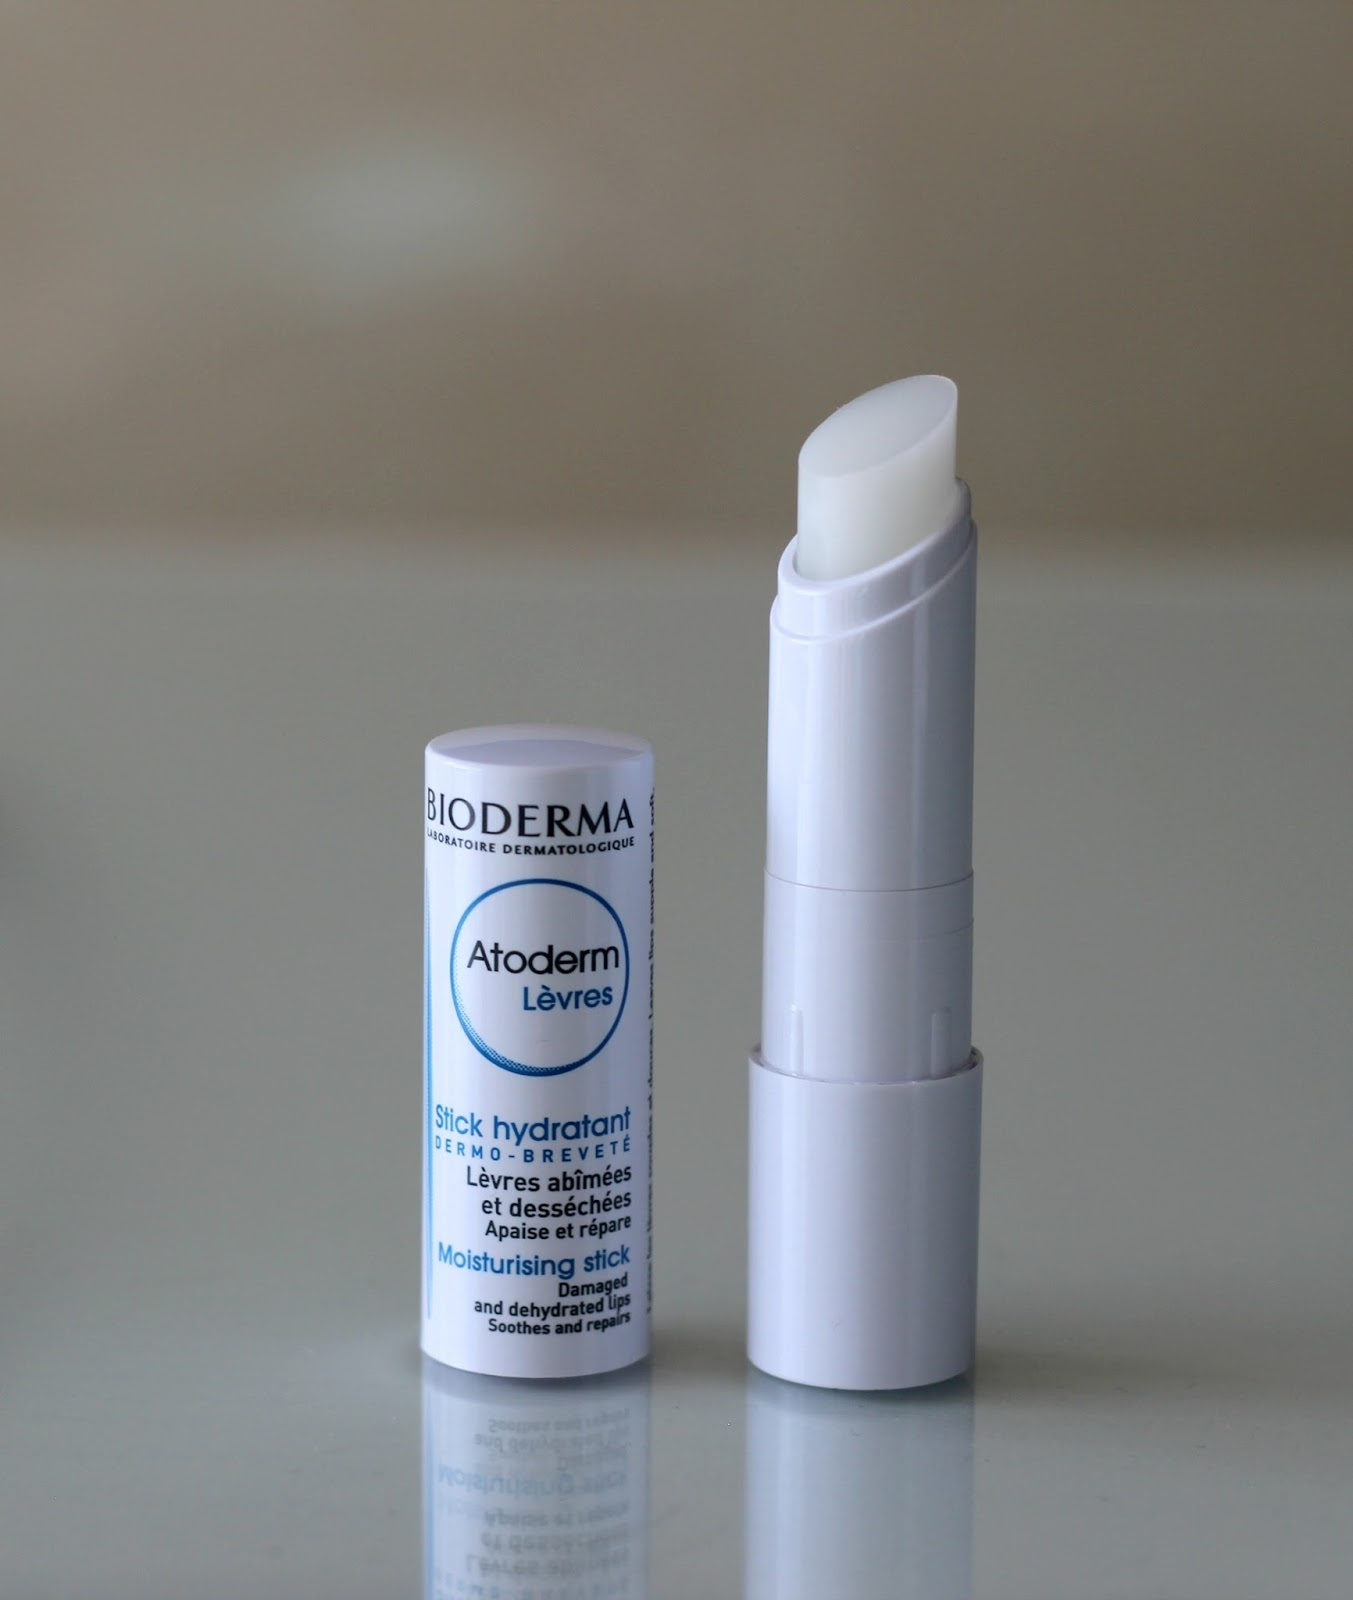 Bioderma Atoderm For Dry And Sensitive Skin Review